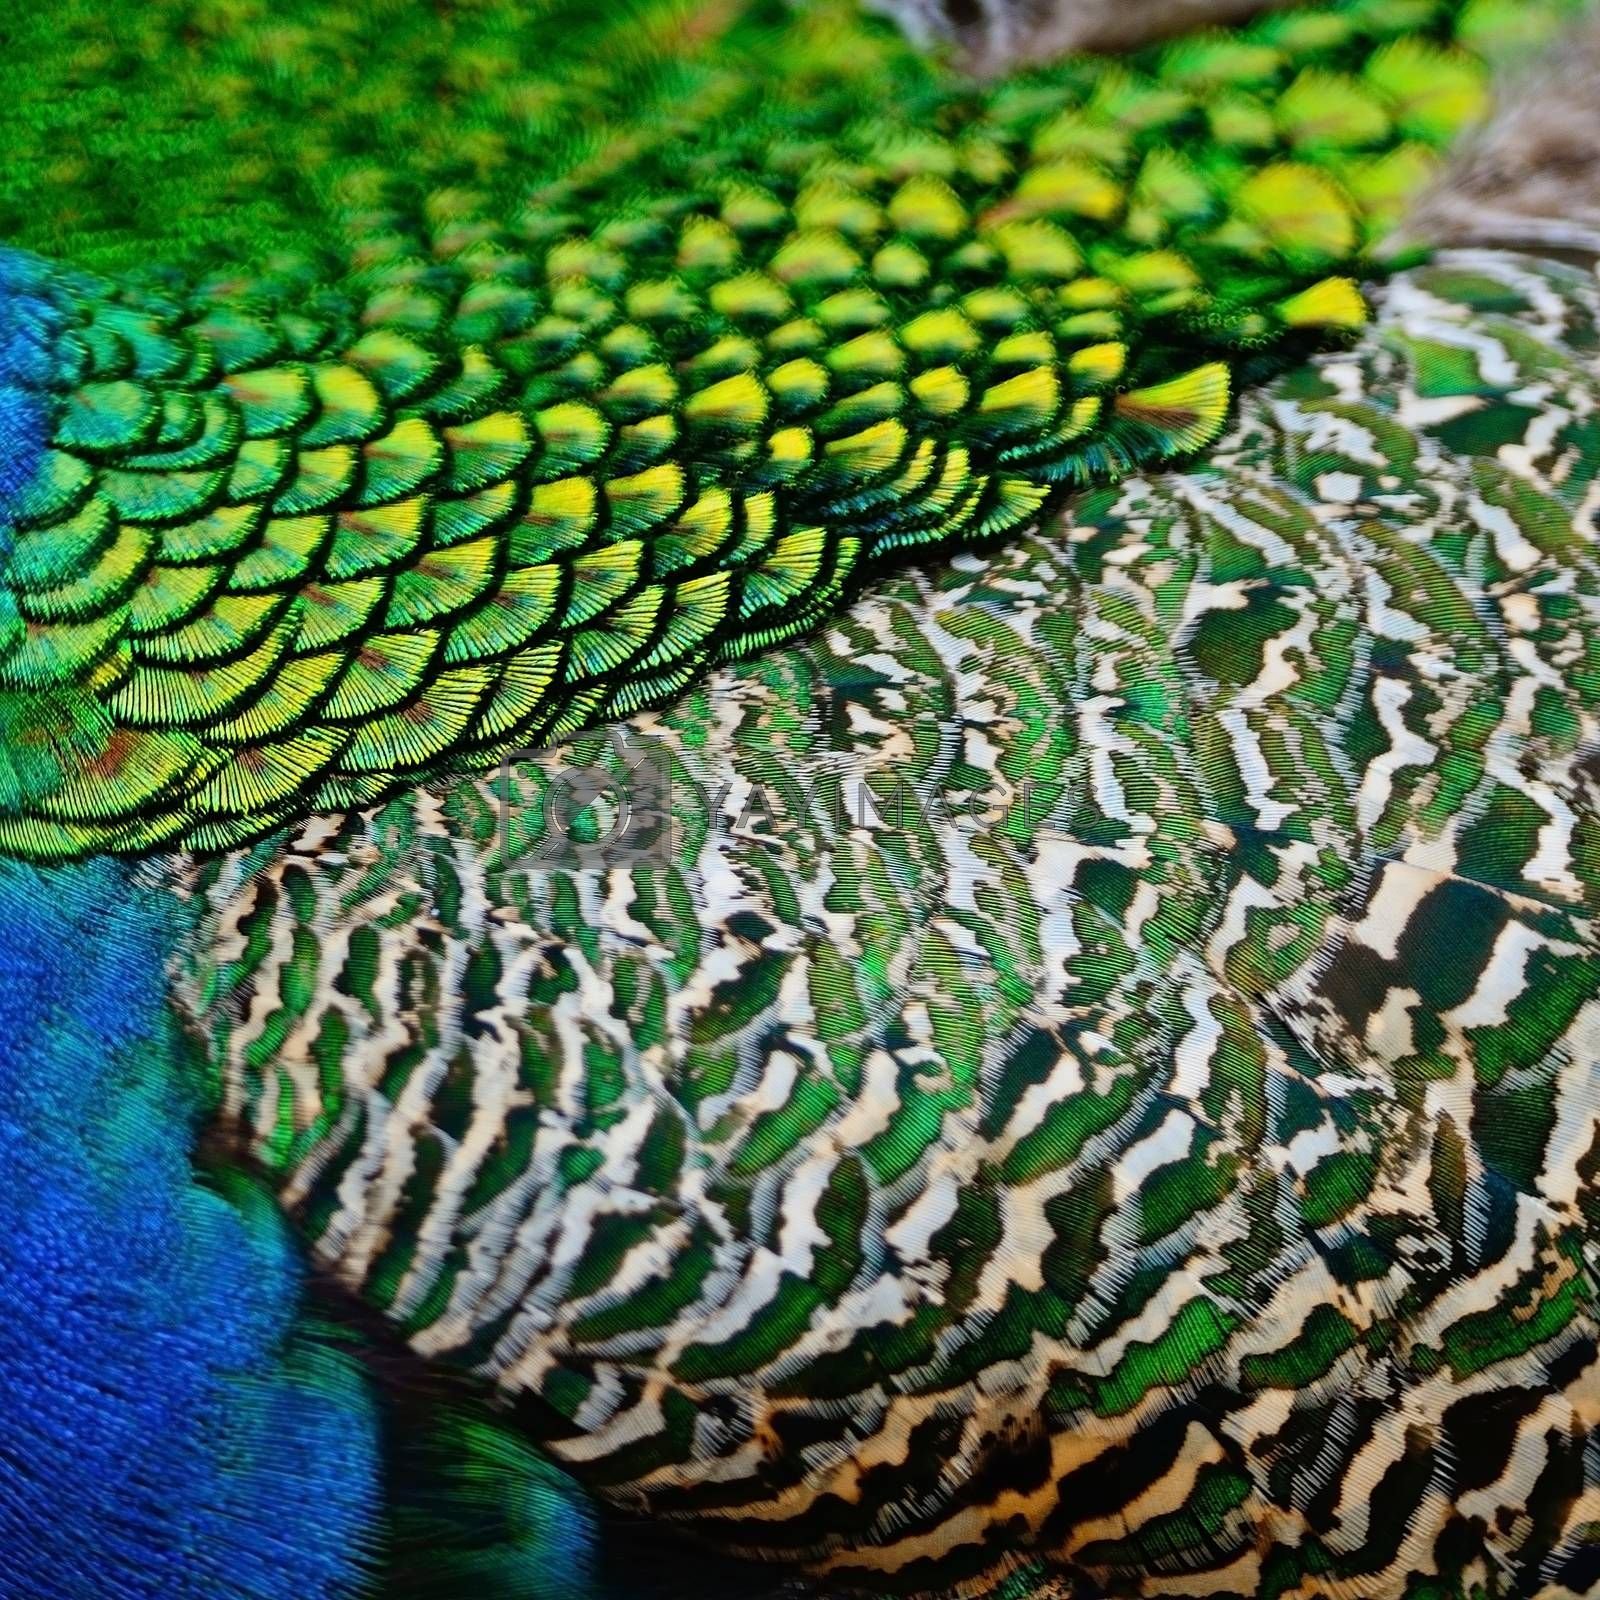 Royalty free image of male Green Peacock feathers by panuruangjan